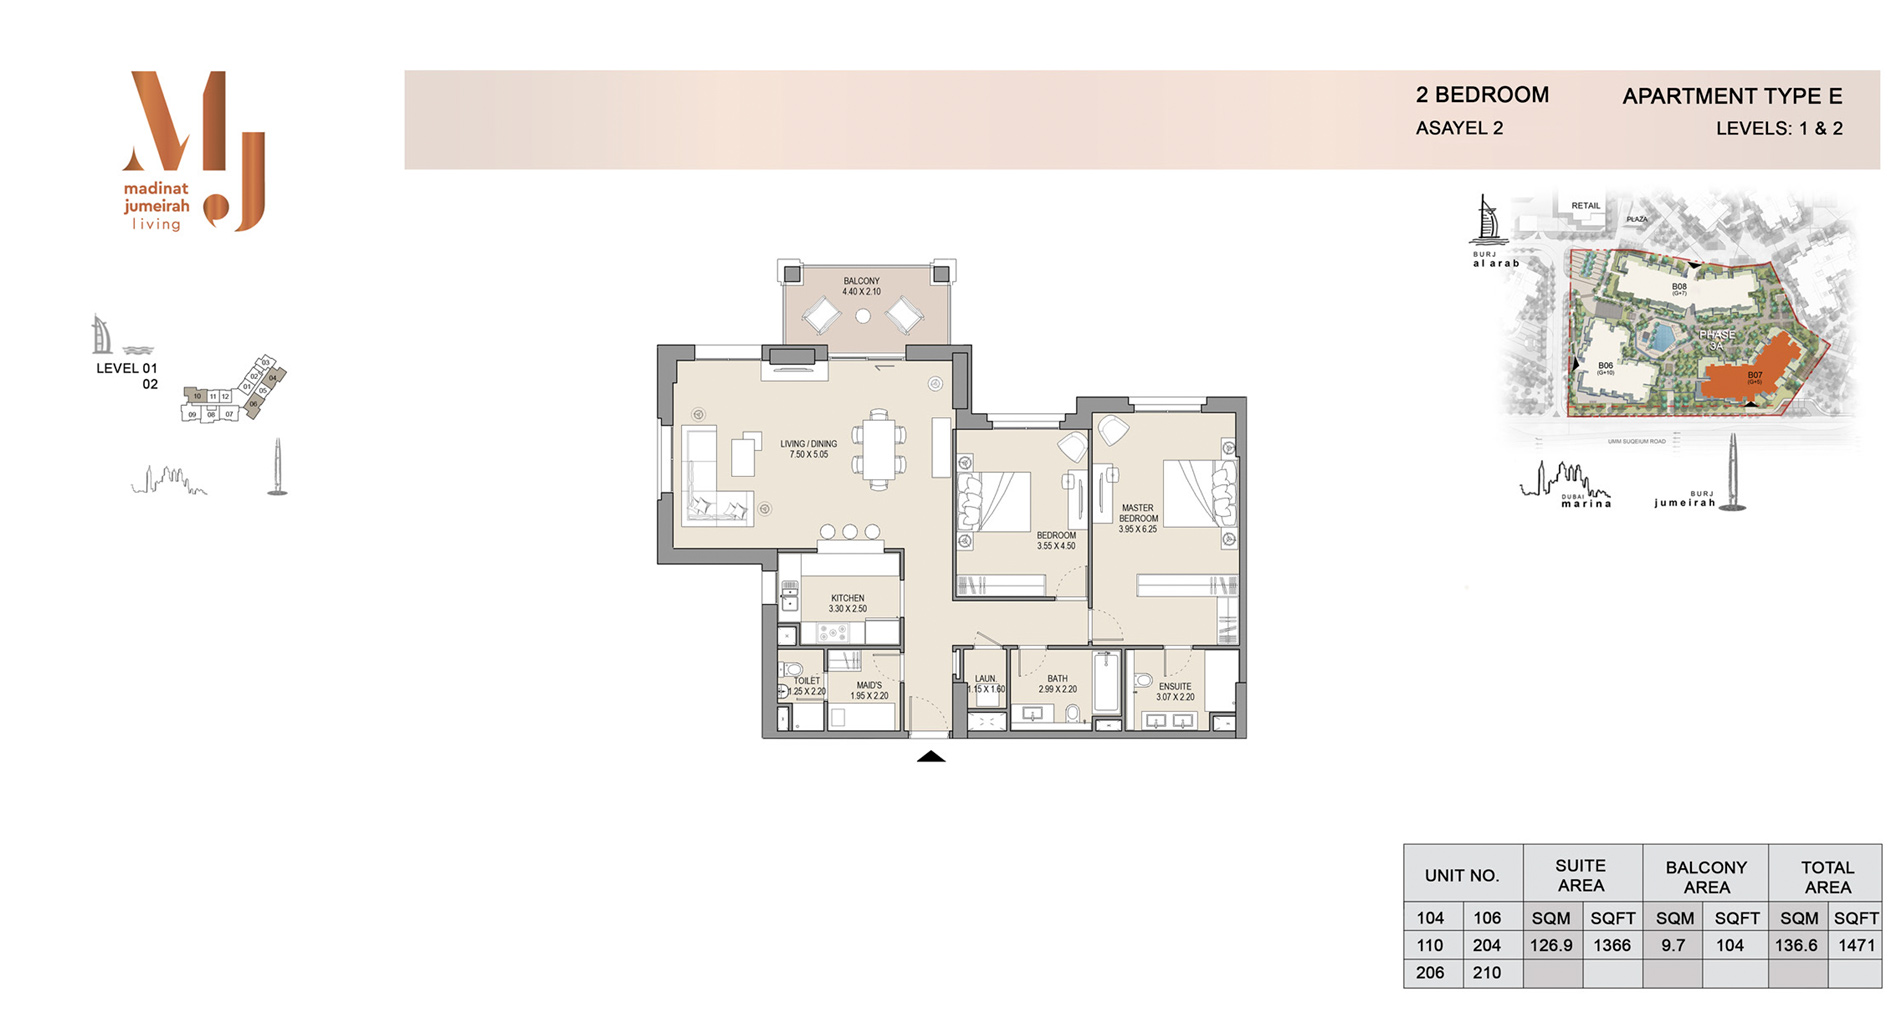 Building 2, 2 Bed Type E Level 1 to 2, Size 1471    sq. ft.